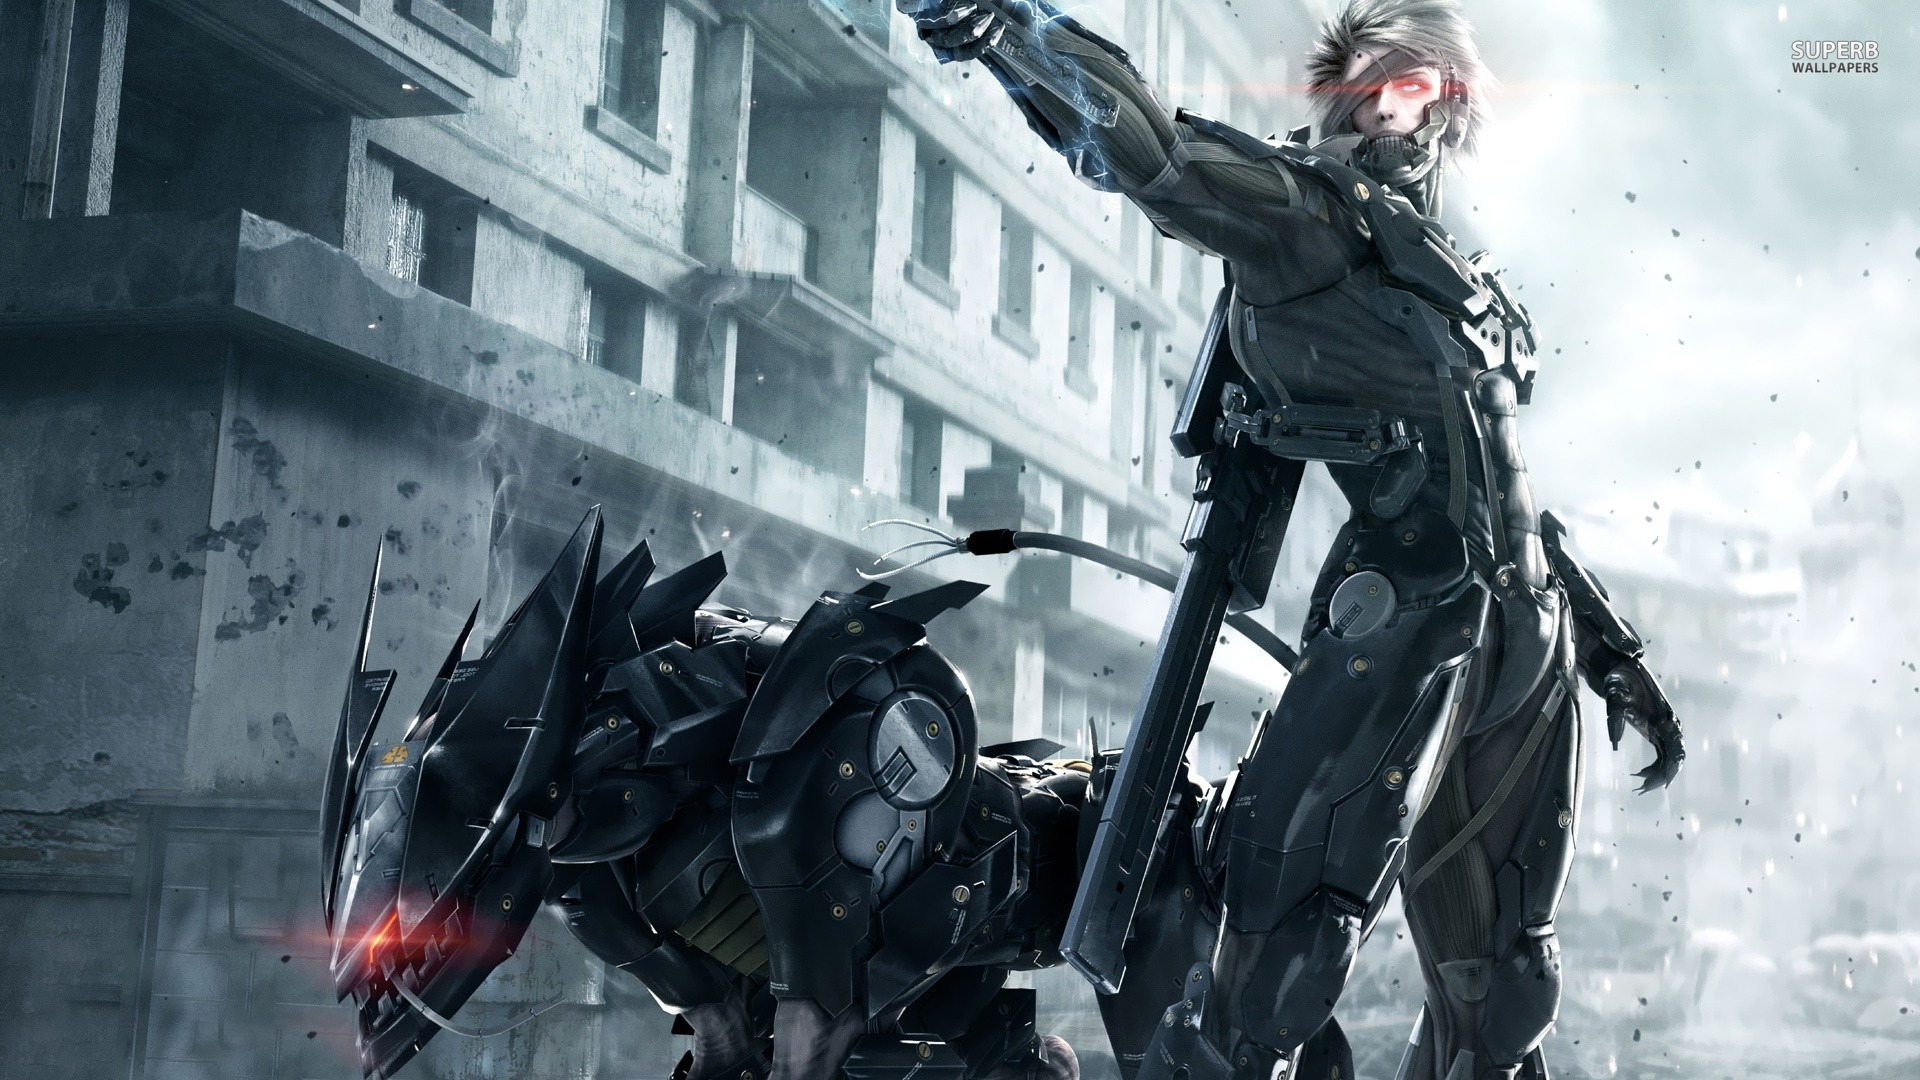 Image 6981891 metal gear rising raiden wallpaper hdg vs 6981891 metal gear rising raiden wallpaper hdg voltagebd